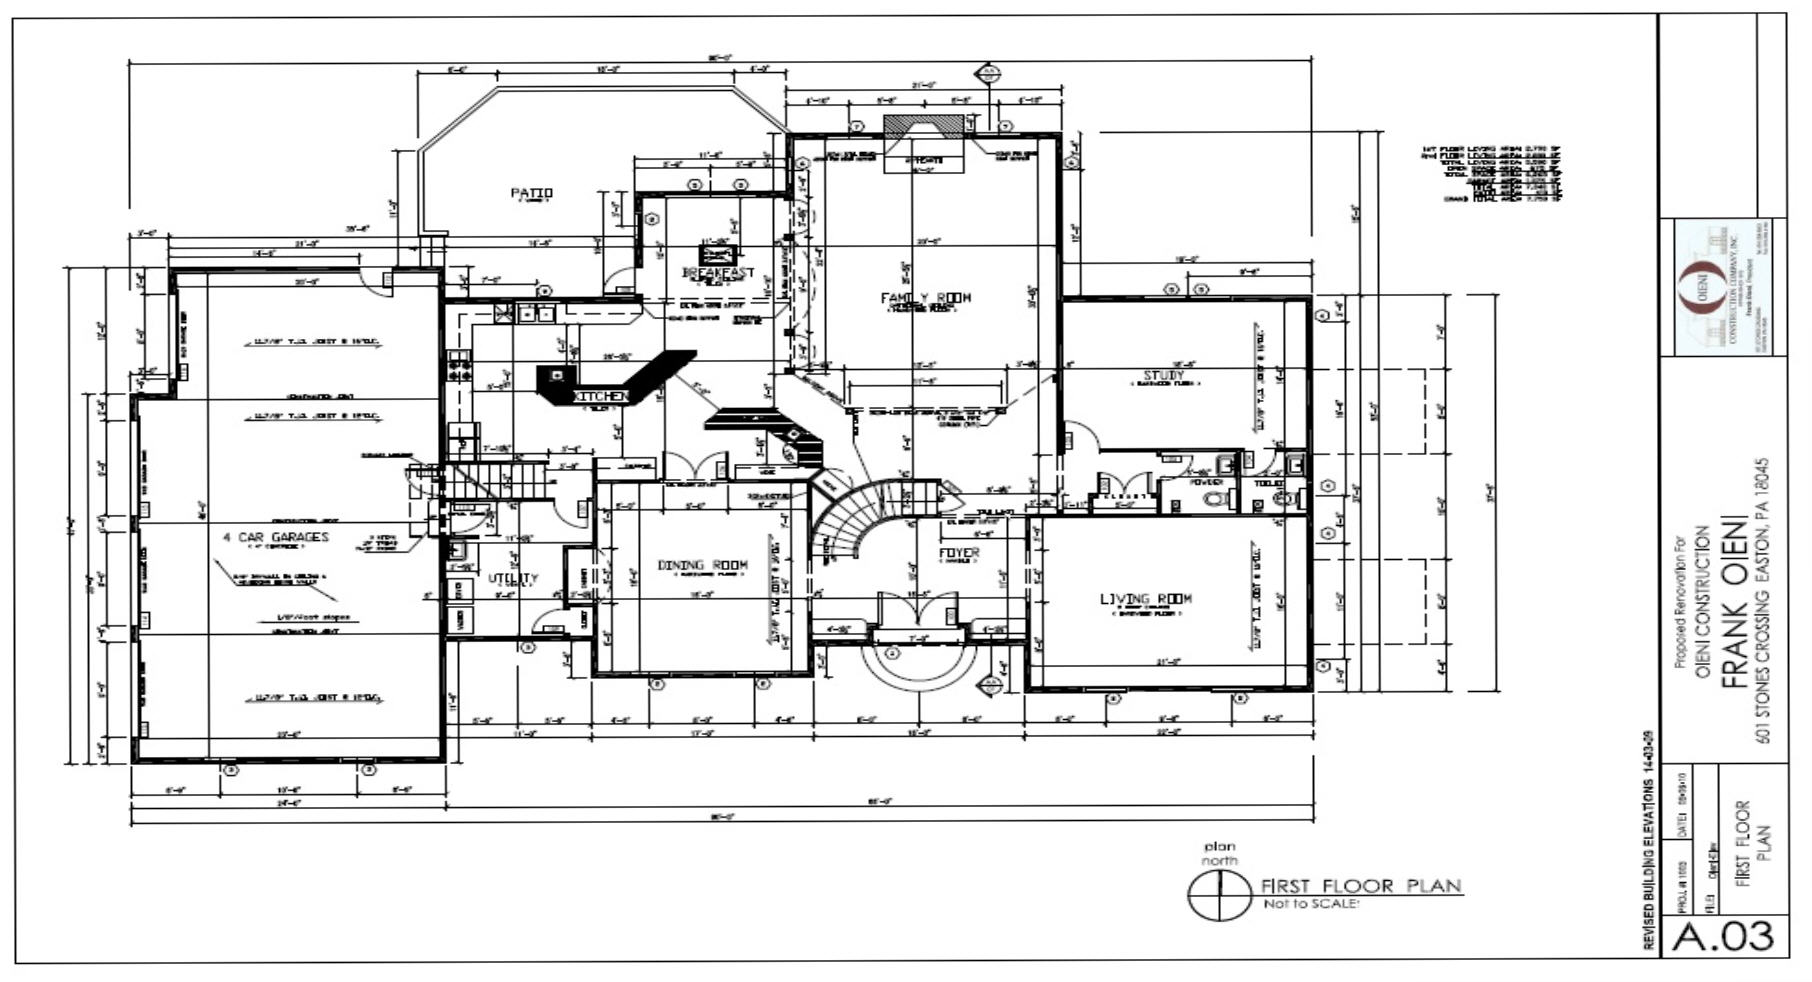 construction floor plan images